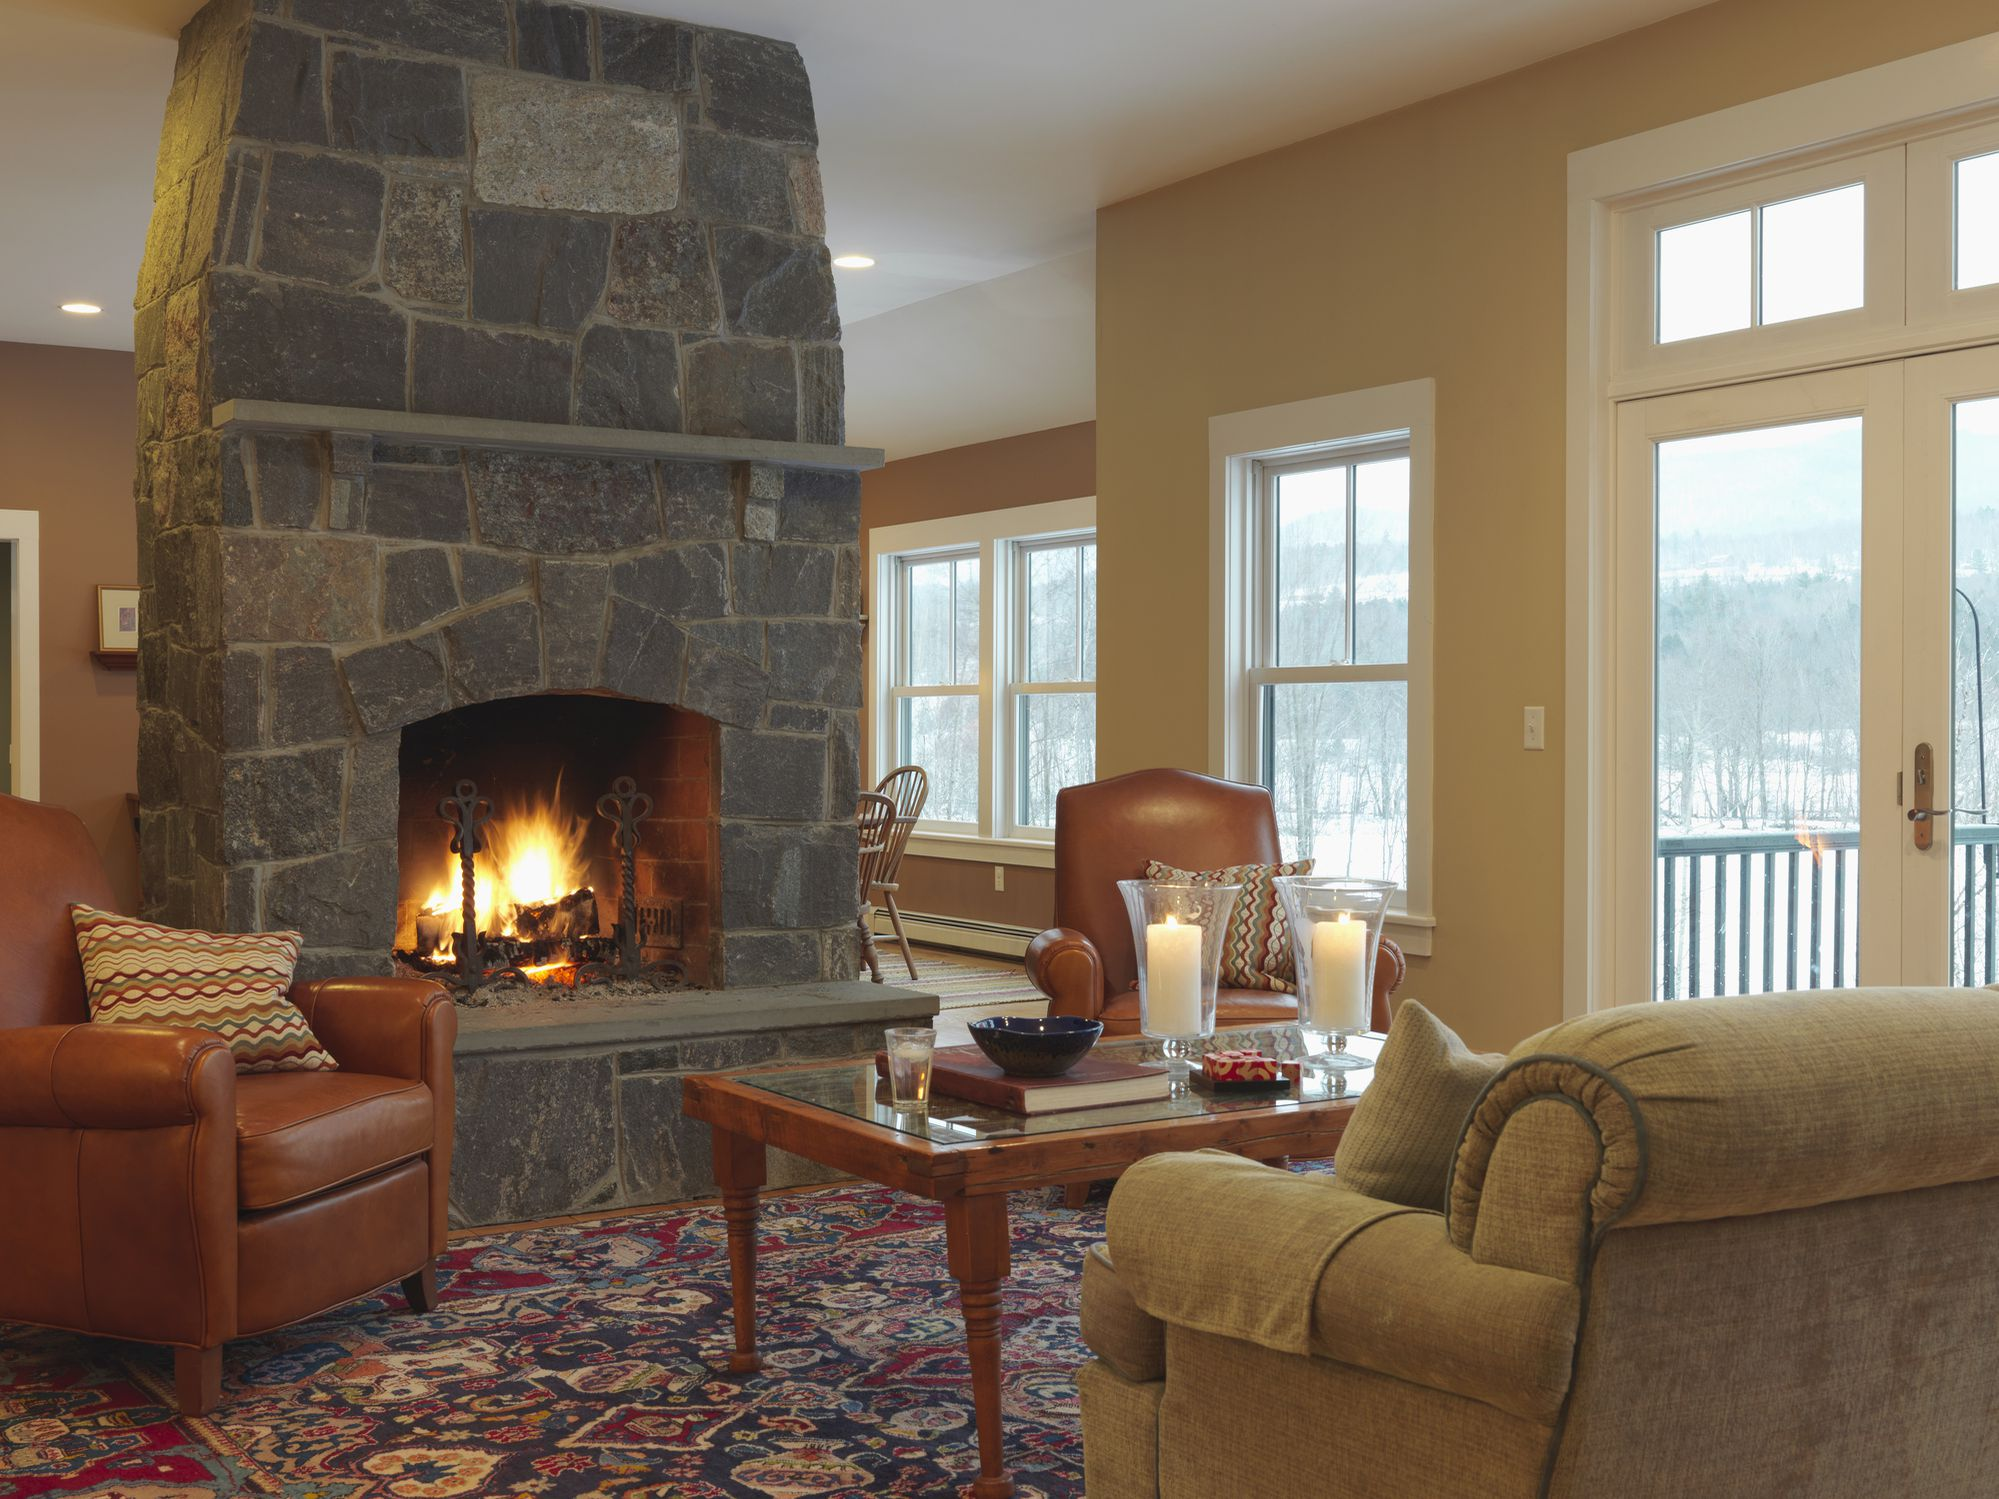 10 easy ways to make your home look inviting in under 10.htm tips for selling a home in winter  tips for selling a home in winter